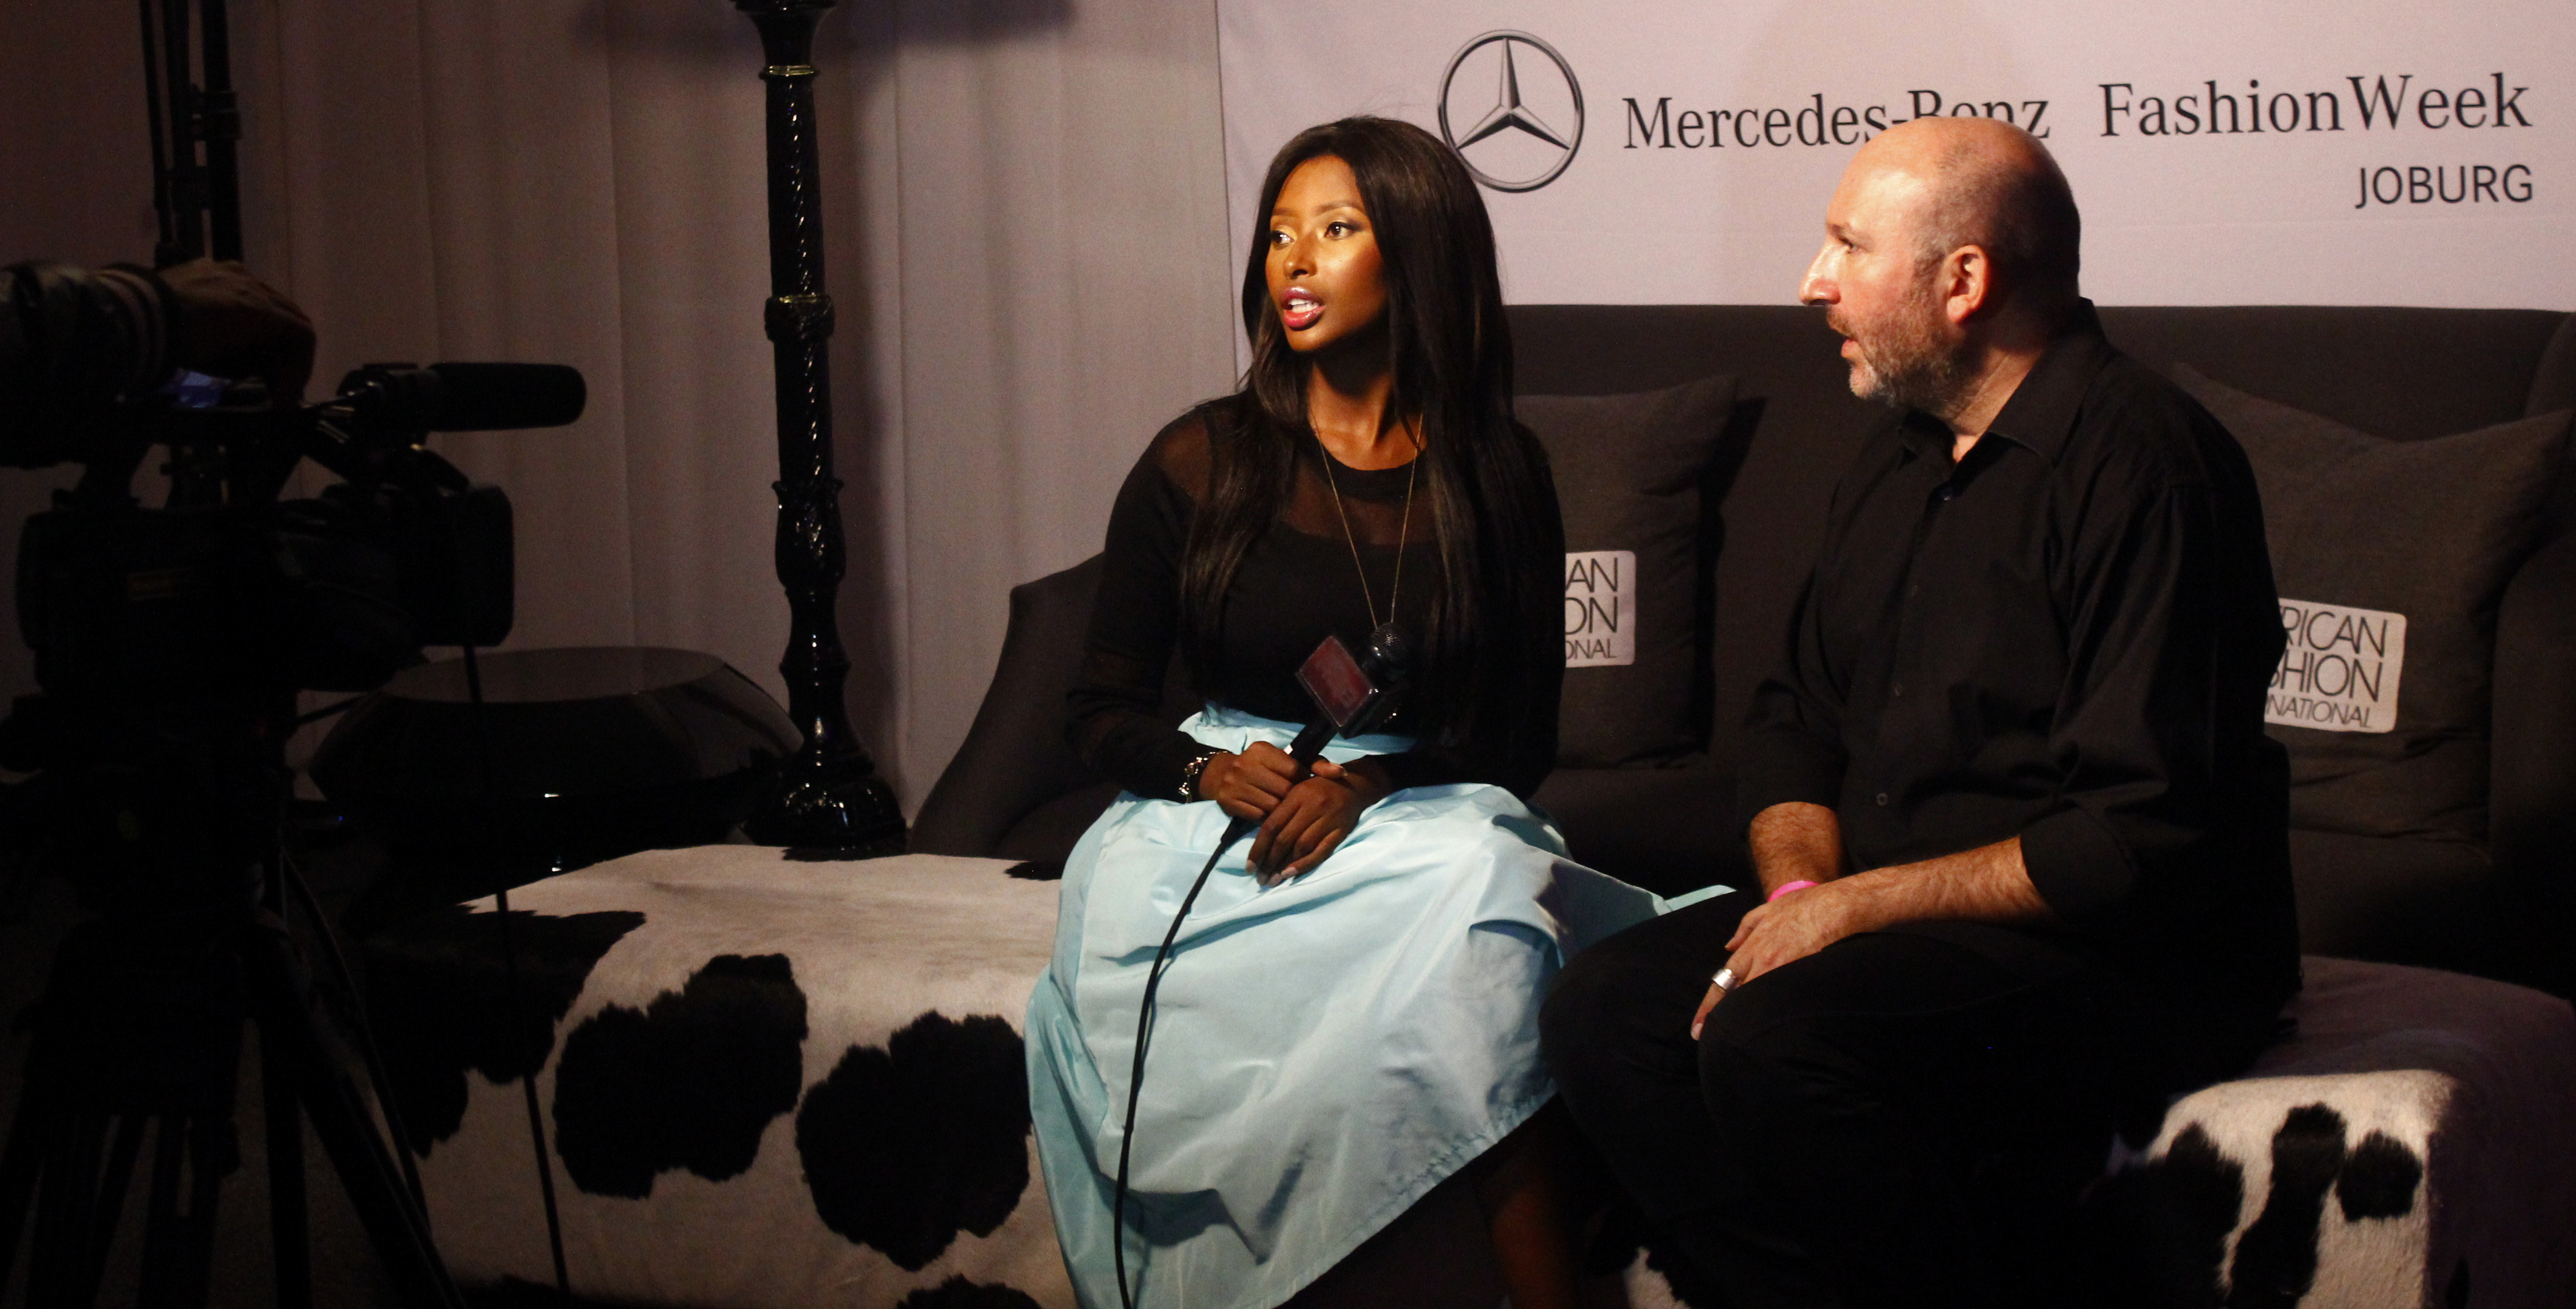 Sinazo Yolwa: If You Missed Out On The Mercedes Benz Fashion Week, Don't